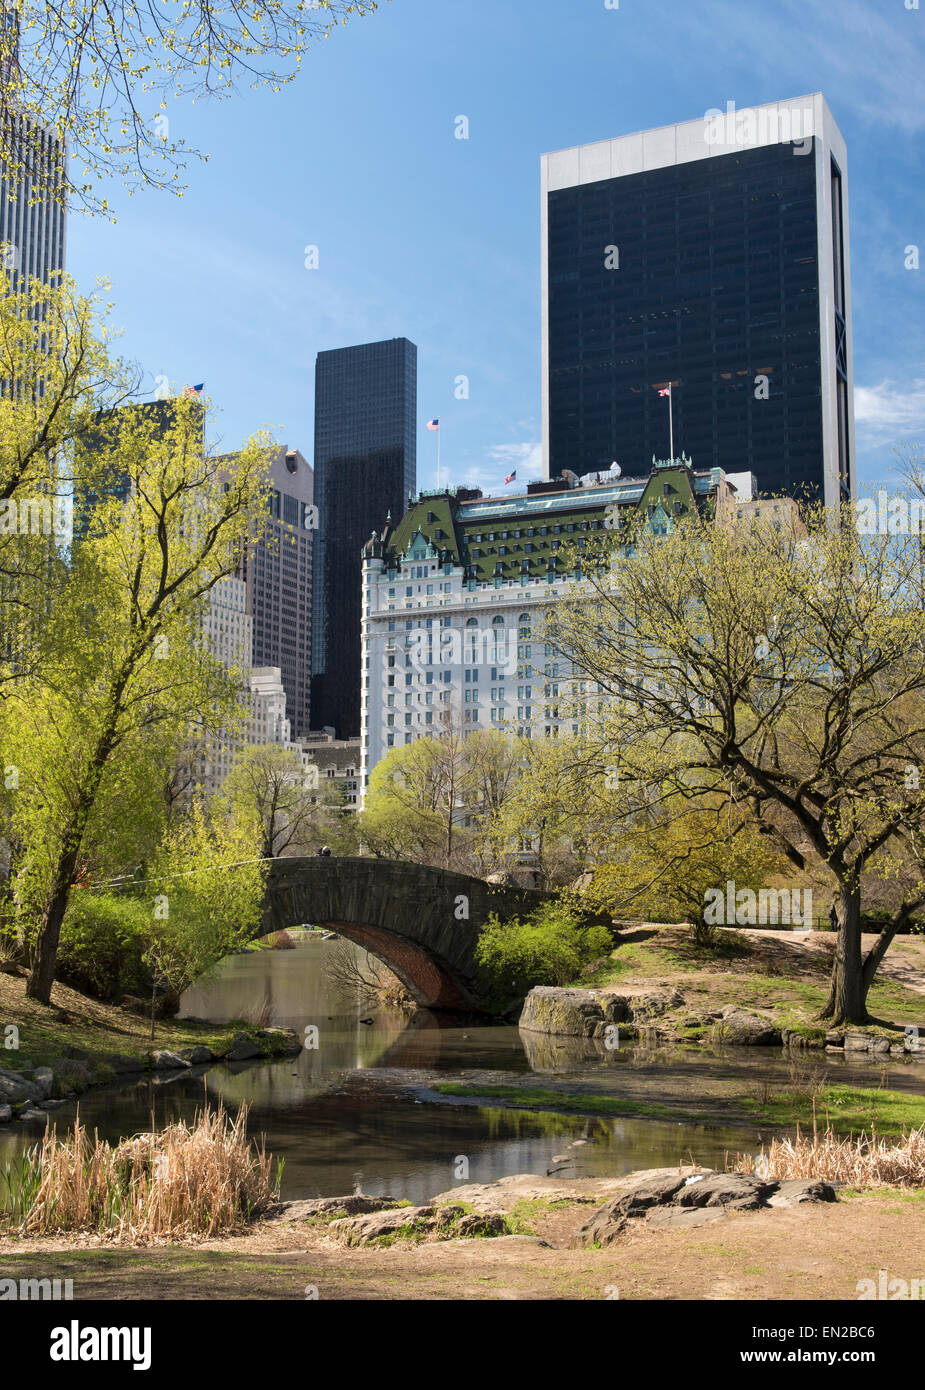 Central Park South and the Plaza Hotel in New York CIty - Stock Image